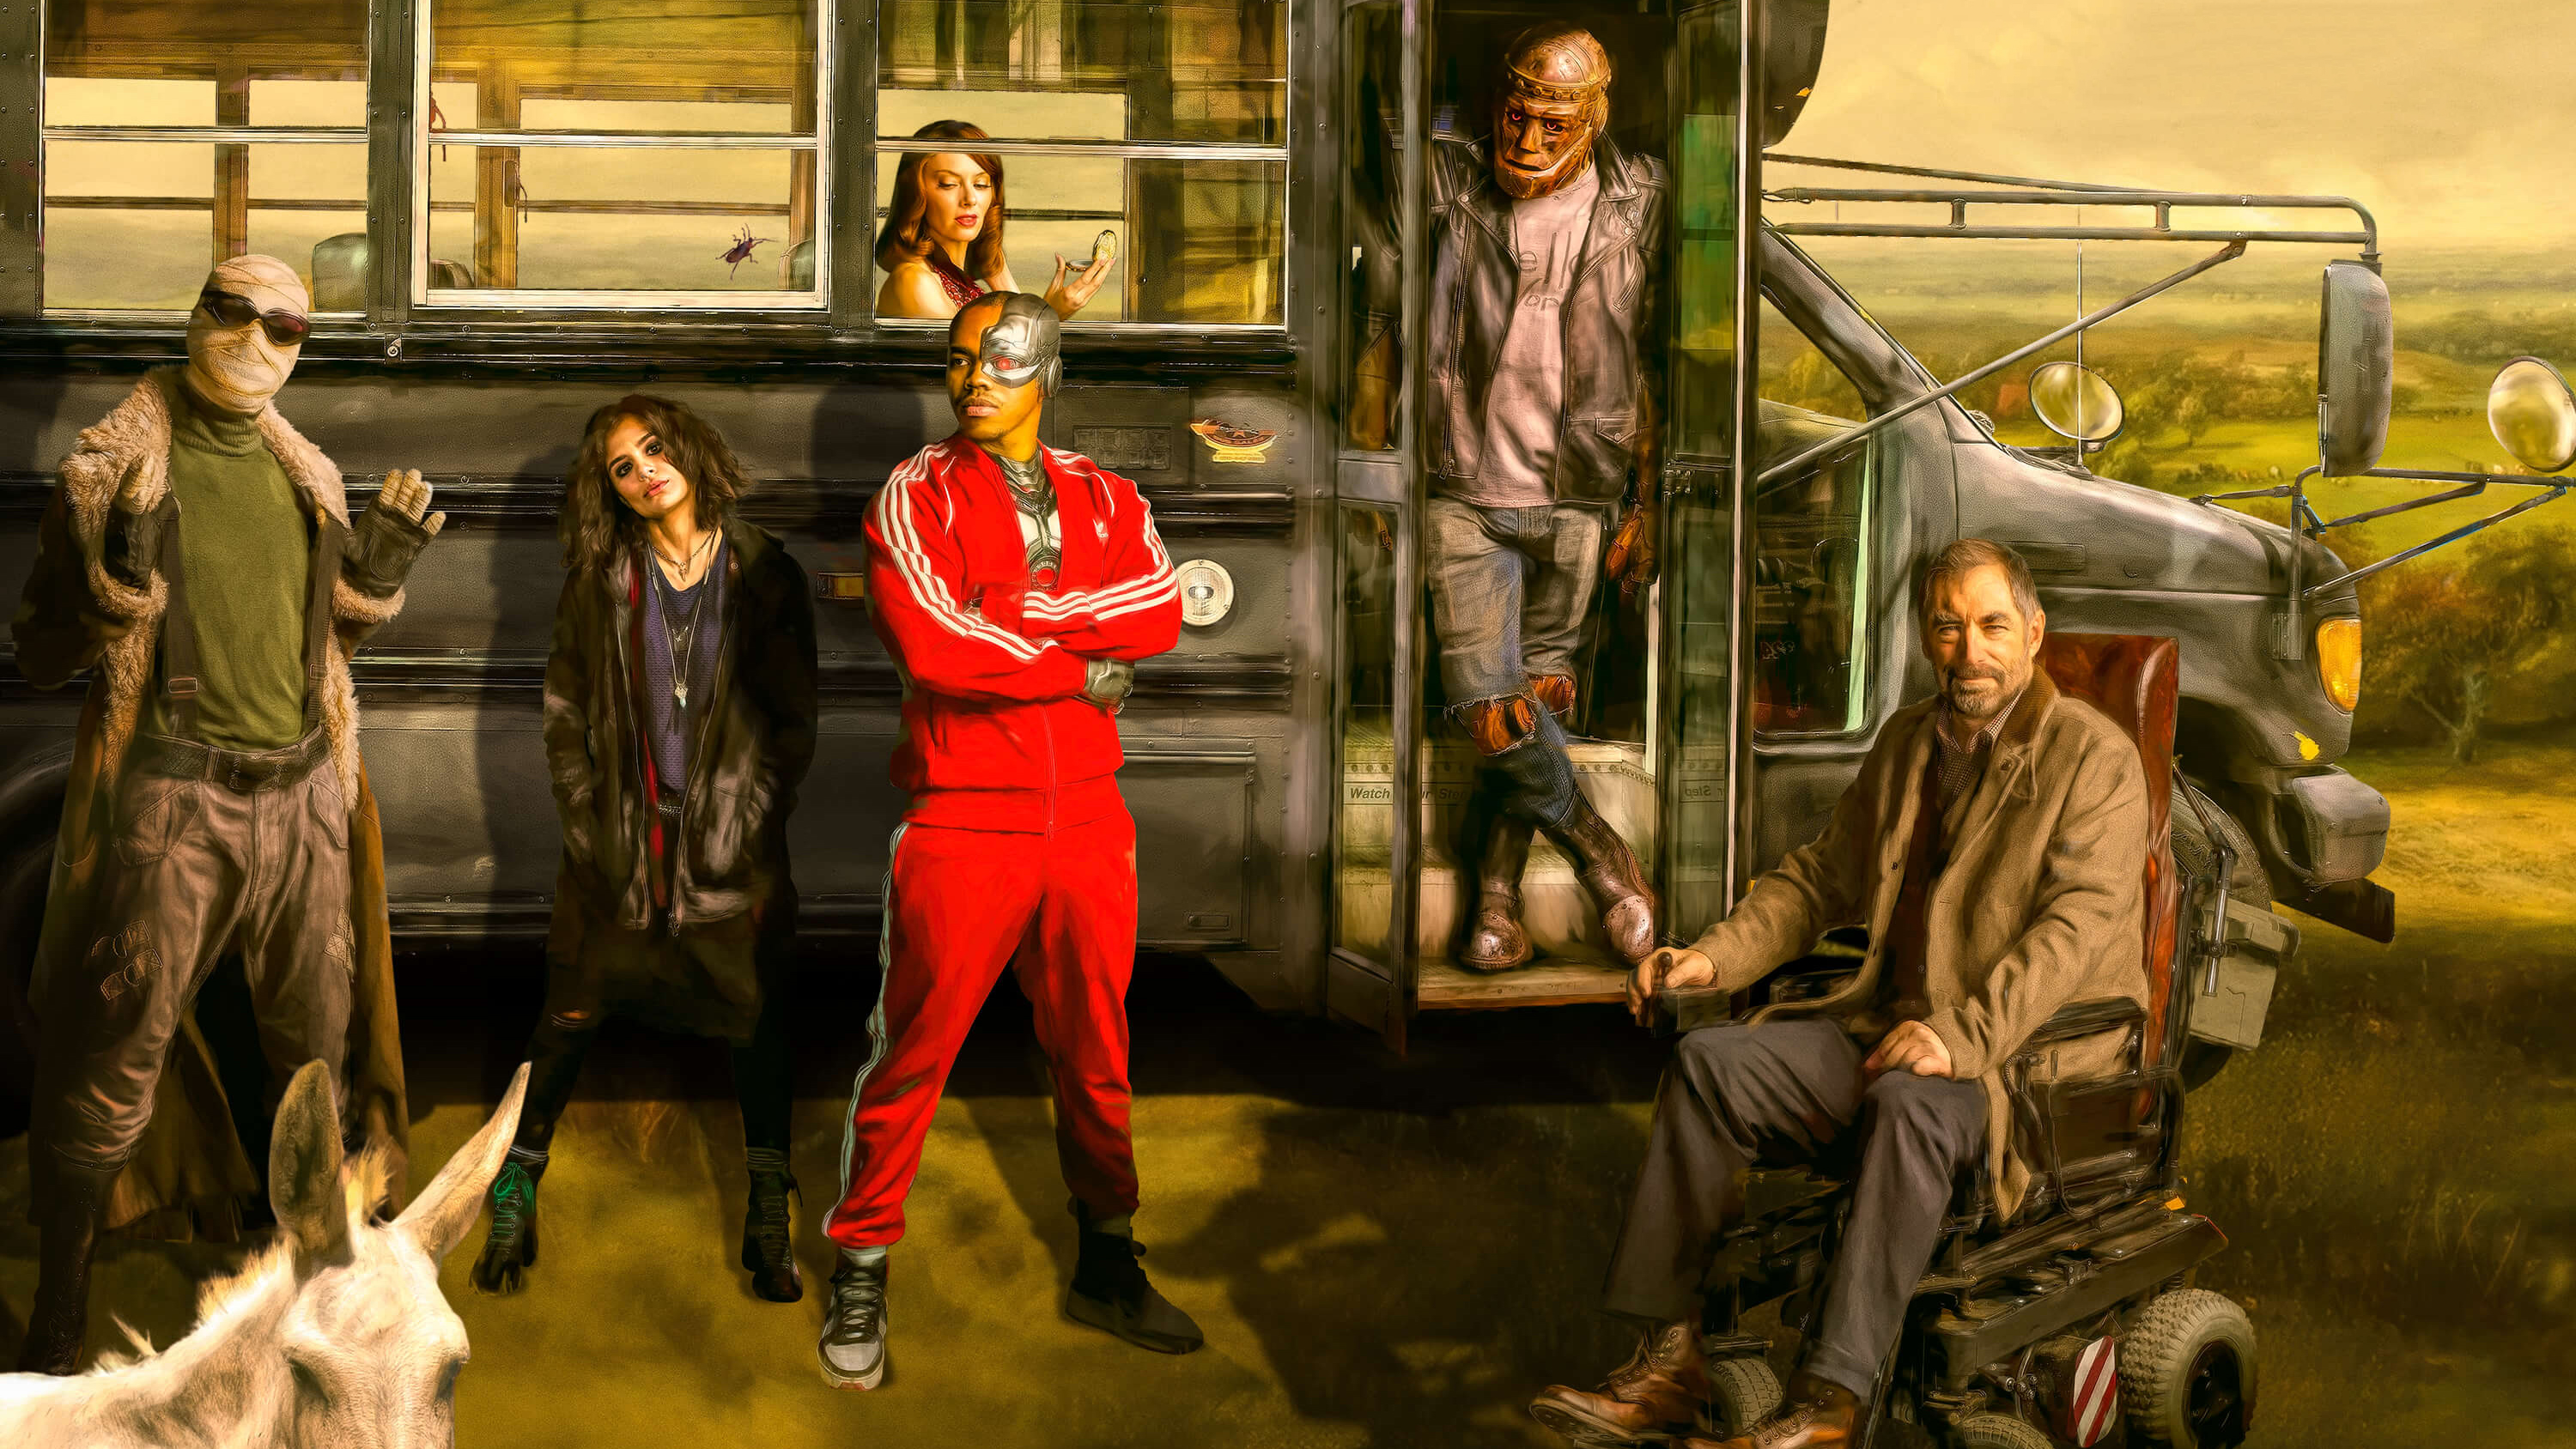 Doom Patrol Hd Tv Shows 4k Wallpapers Images Backgrounds